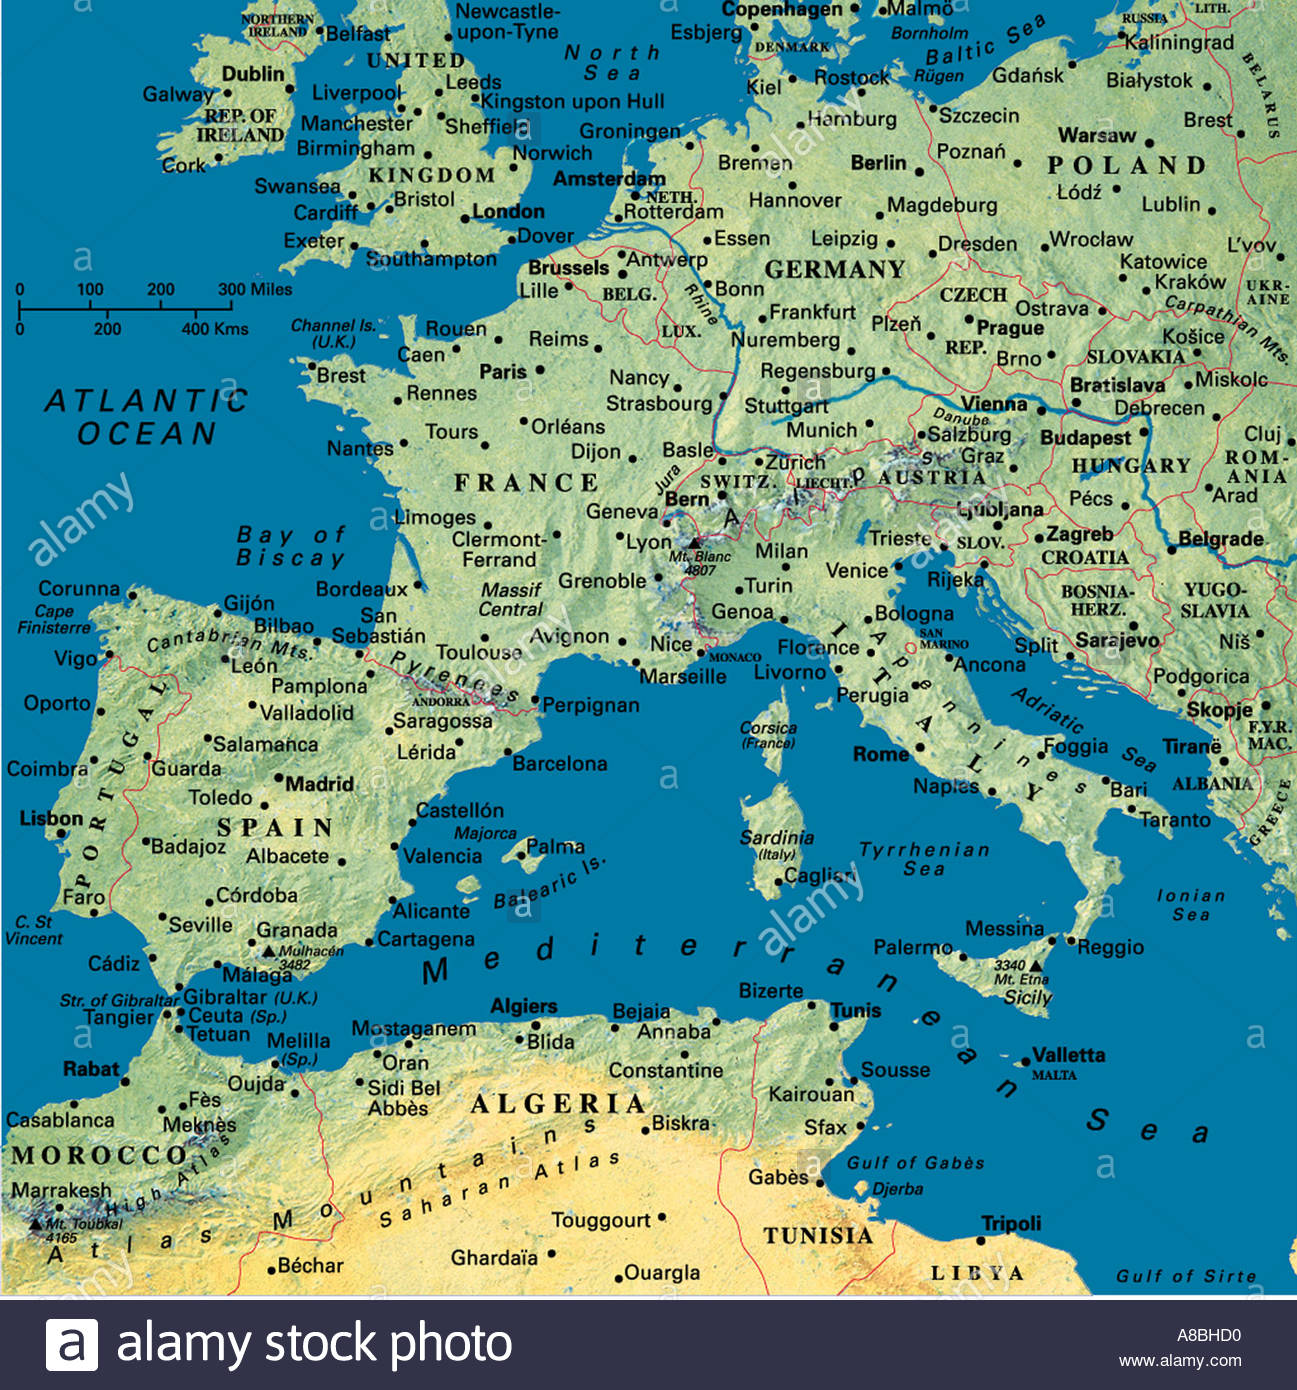 Map Of Spain Portugal And Italy.Map Maps Europe Algeria Tunesia North Africa Spain Portugal France